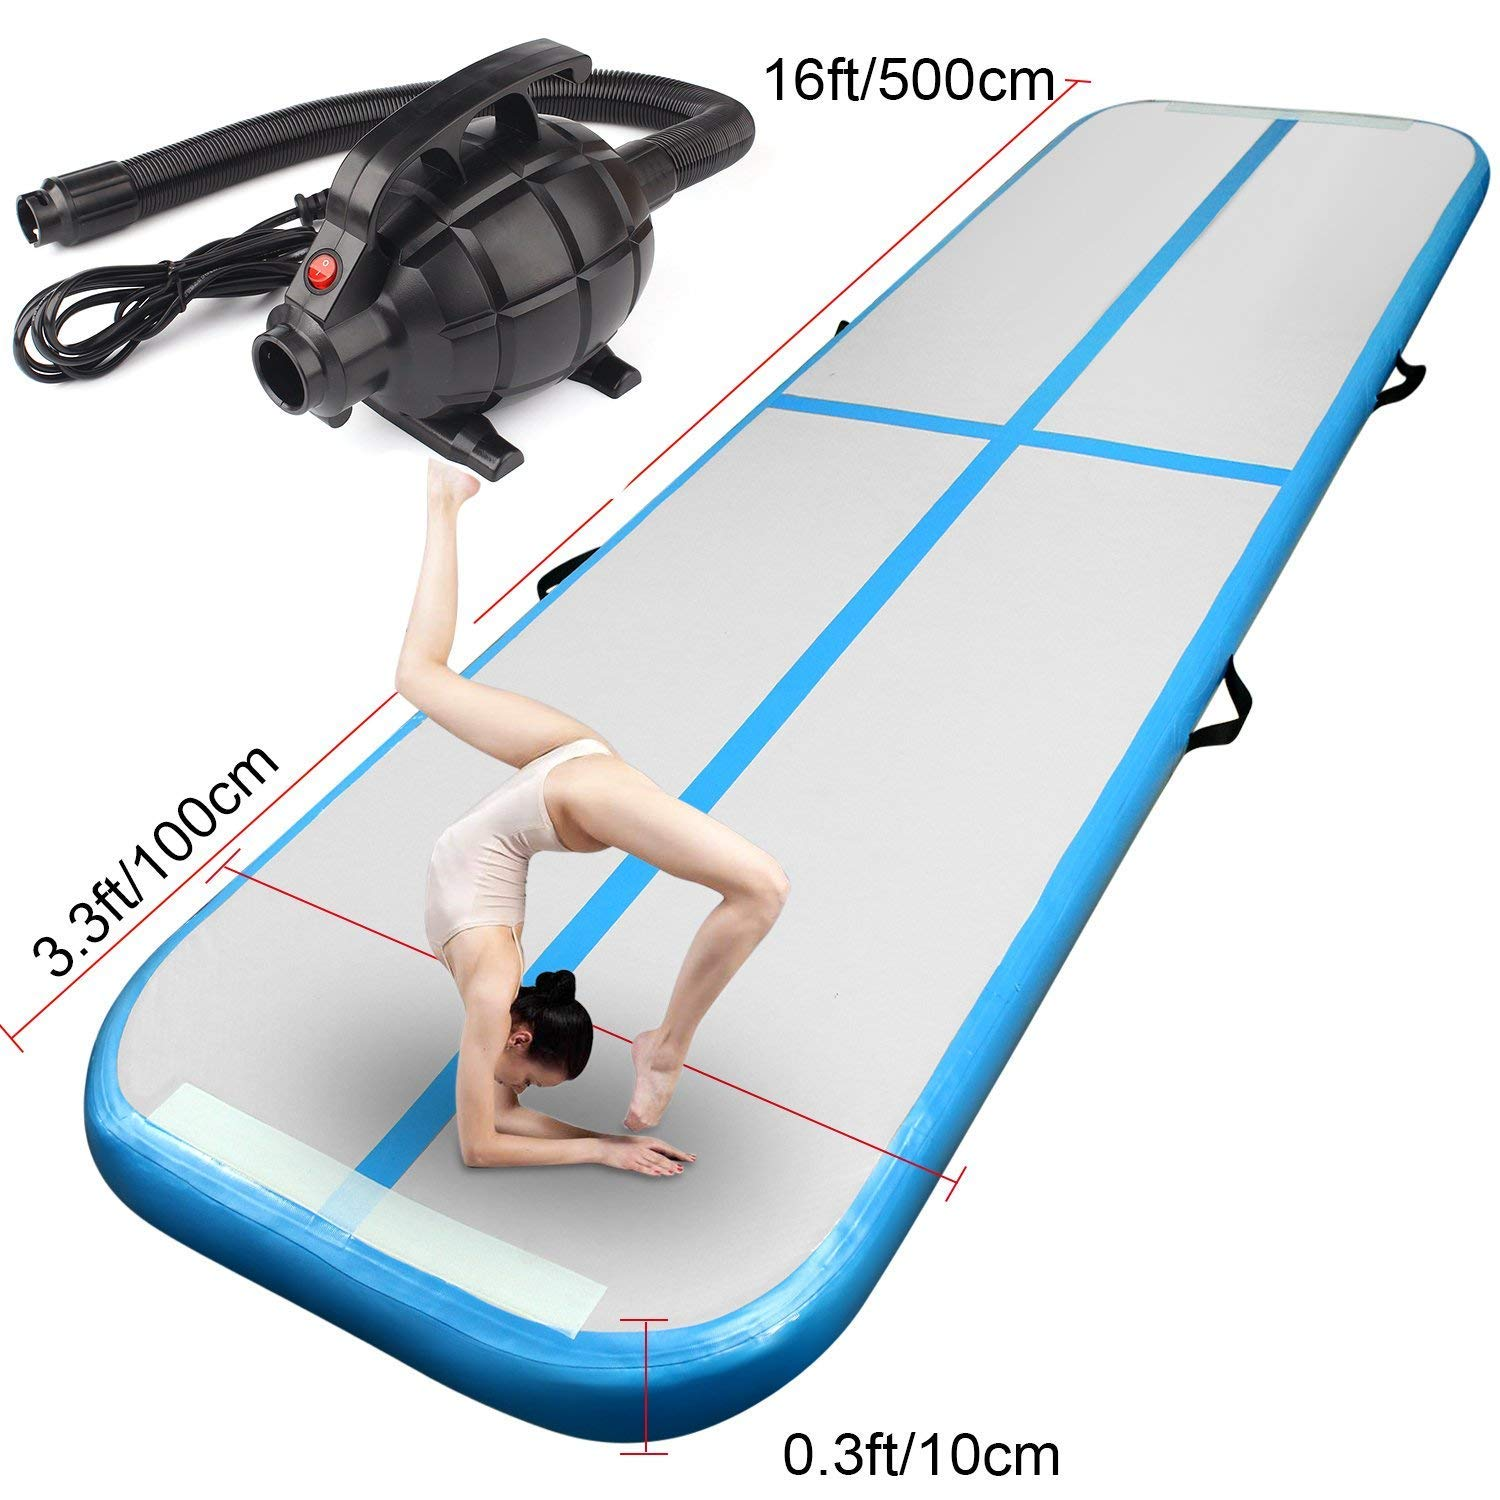 FBSPORT 9.84ft/13.12ft/16.4ft/19.68ft Training mat Inflatable Gymnastics airtrack with Electric Air Pump for Practice Gymnastics, Tumbling,Parkour, Home Floor (Blue, 16.5)